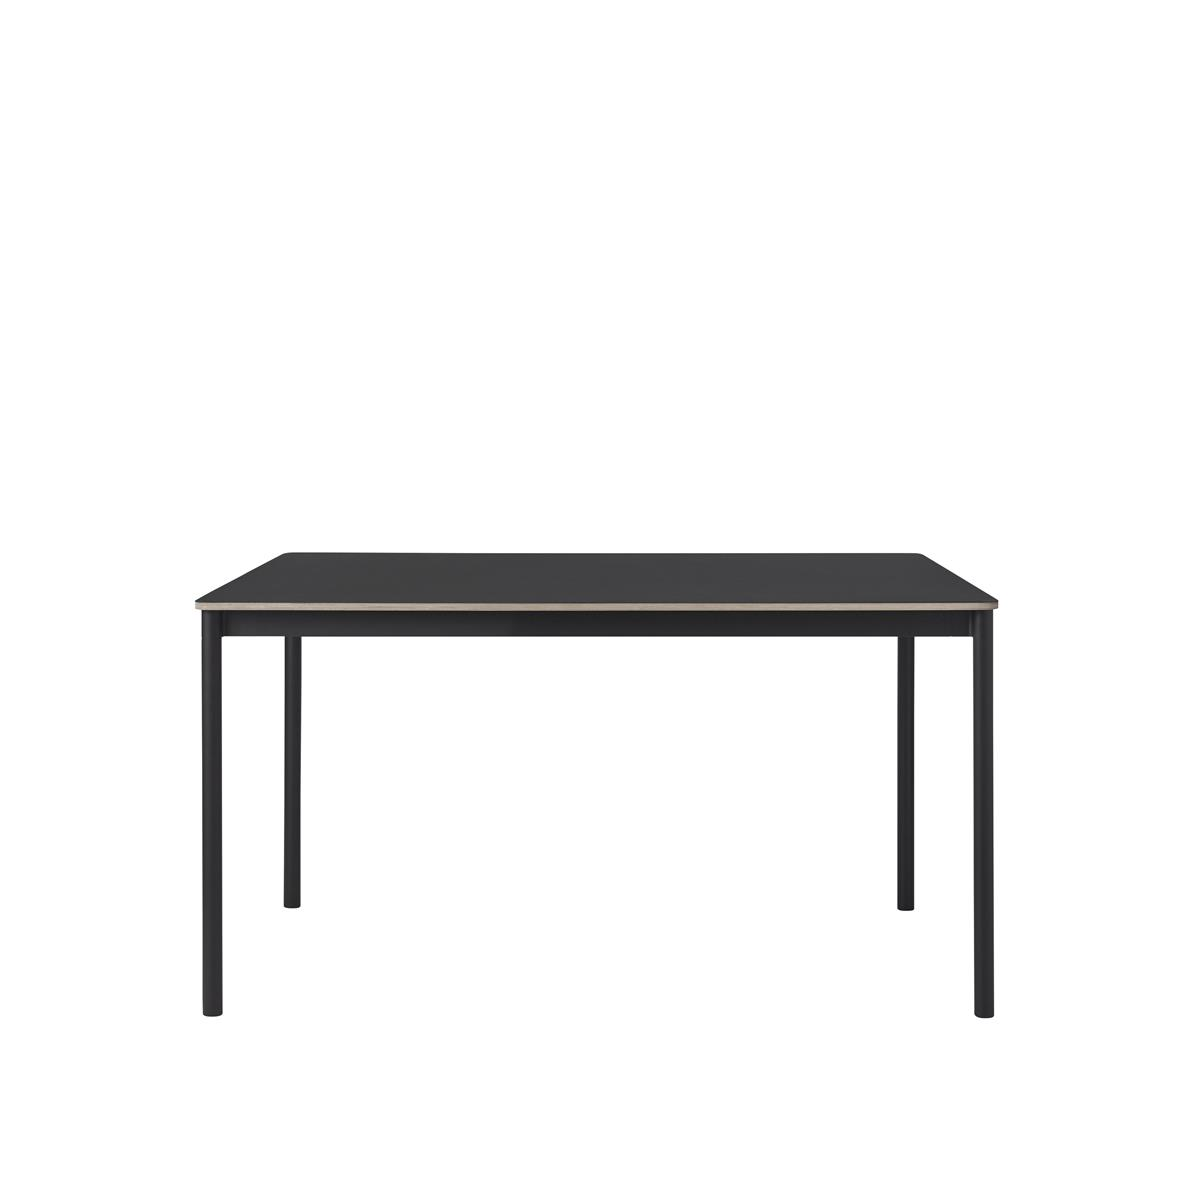 Base Table / 140X70 Linoleum - Plywood edges